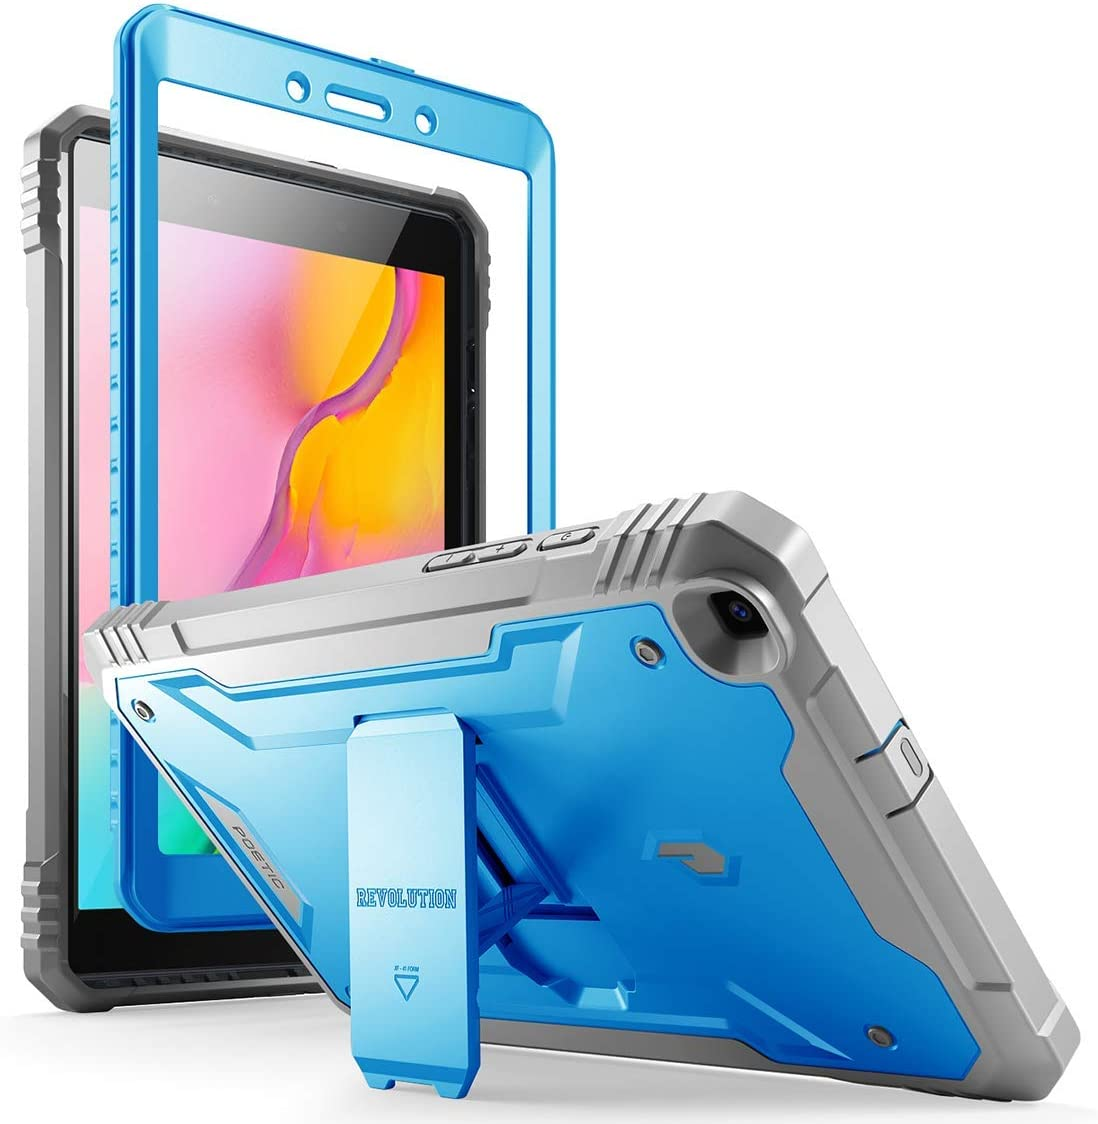 Galaxy Tab A 8.0 2019 Rugged Case with Kickstand,SM-T290 SM-T295, Poetic Full Body Shockproof Cover, Built-in-Screen Protector, Revolution, for Samsung Galaxy Tab A Tablet 8.0 Inch (2019), Blue/Gray